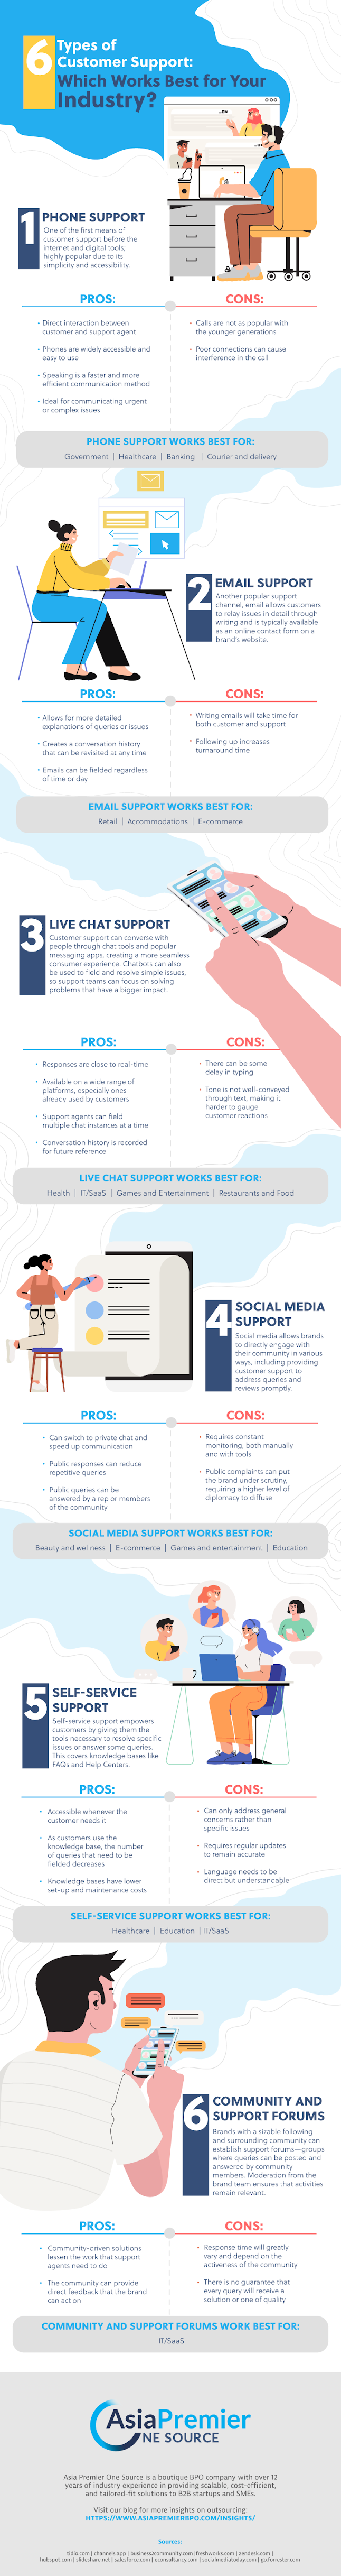 6 Types of Customer Support: Which Works Best for Your Industry? #infographic #Customer Support #Workers #infographics #Business